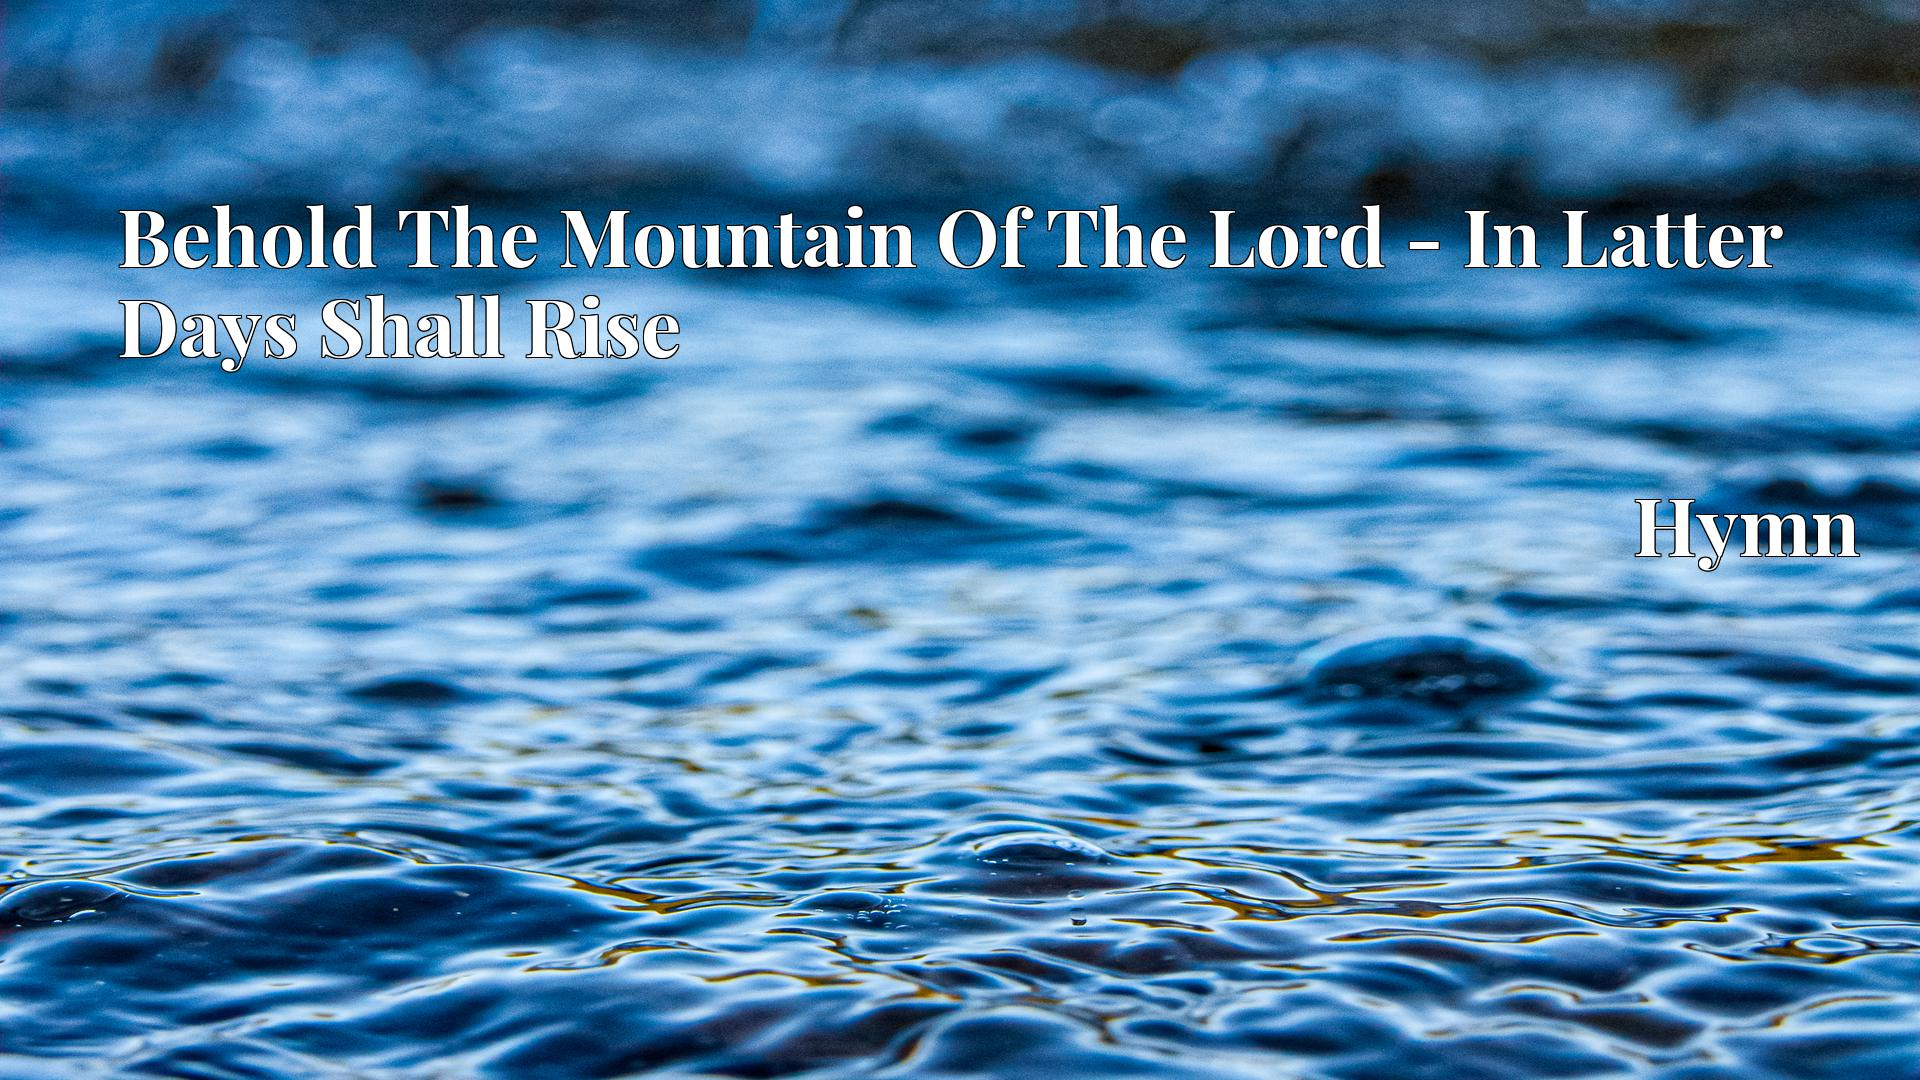 Behold The Mountain Of The Lord - In Latter Days Shall Rise Hymn